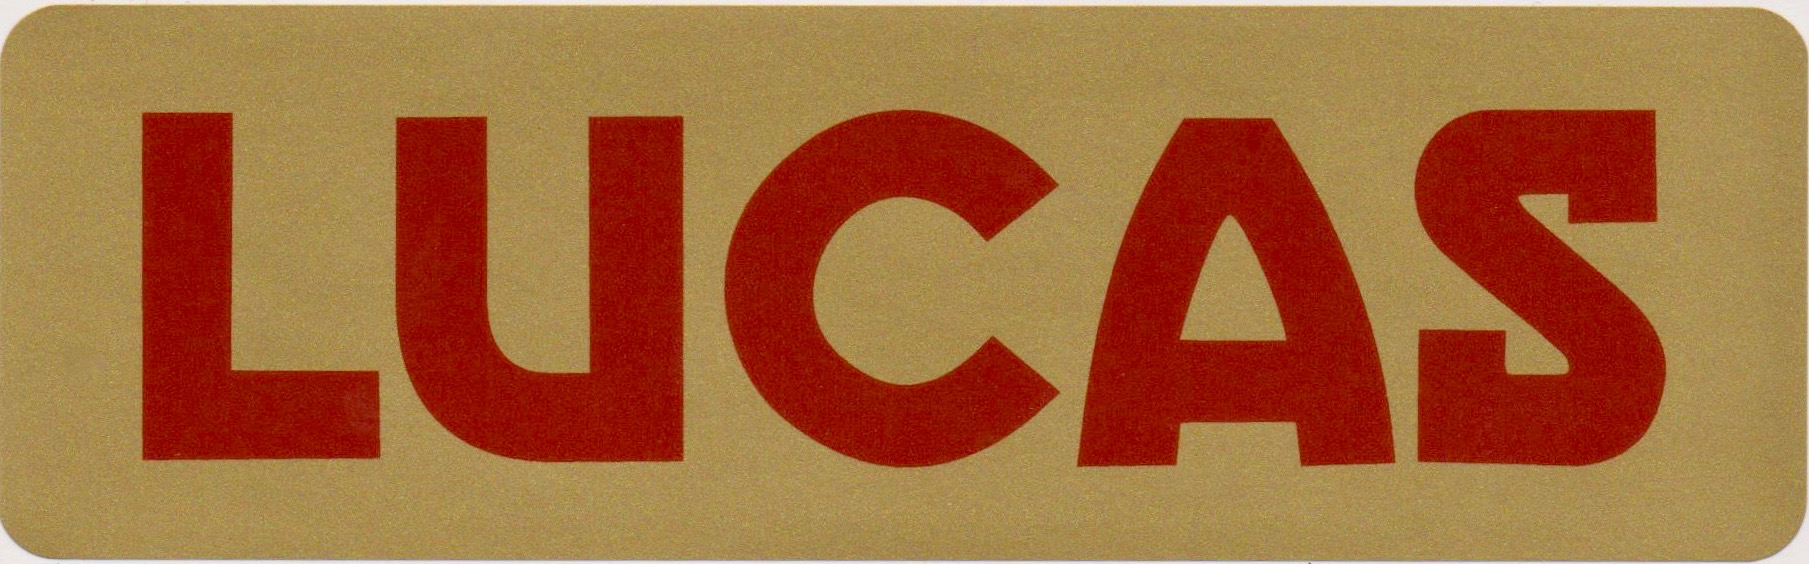 Lucas Car Battery Sticker Red And Gold